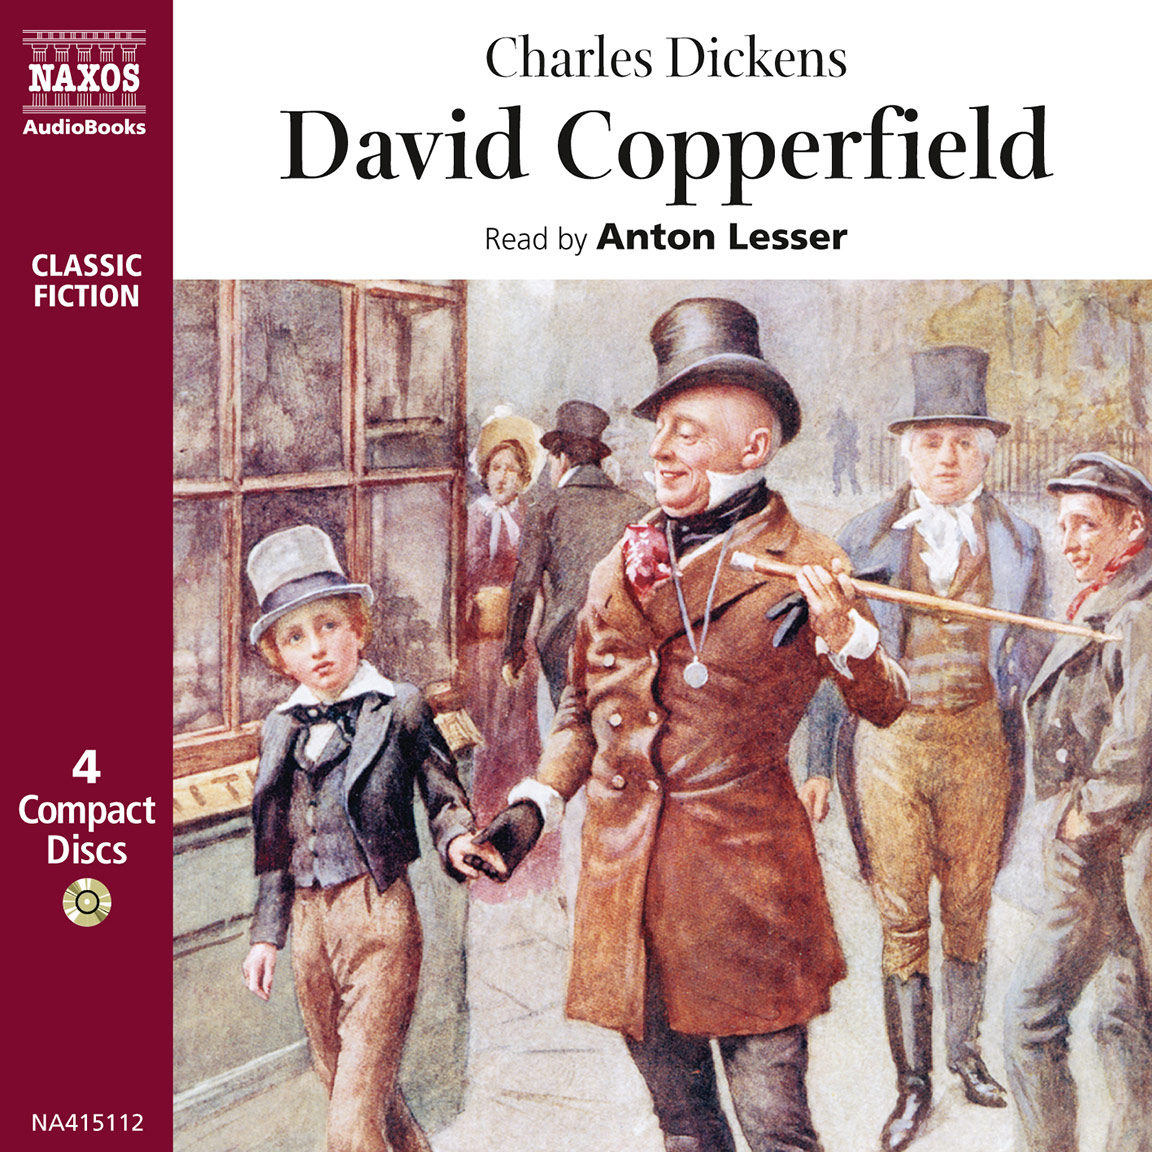 david copperfield abridged naxos audiobooks